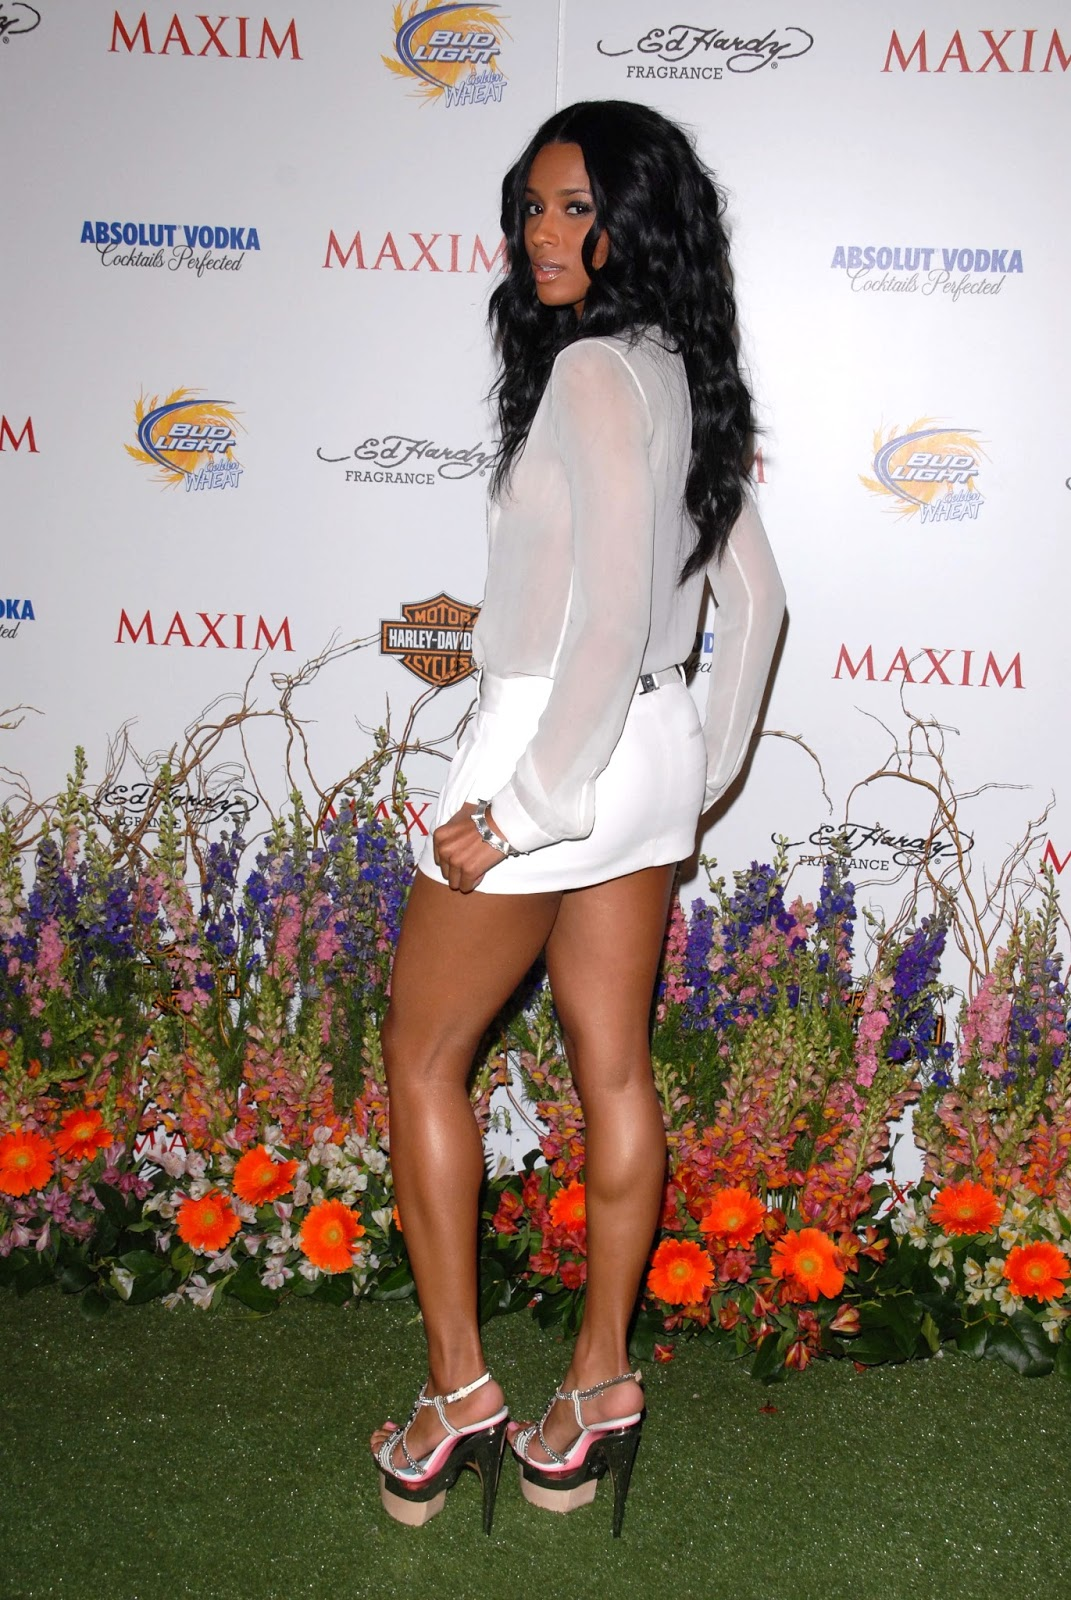 Ciara The Singer Pics Of Her Feet 59